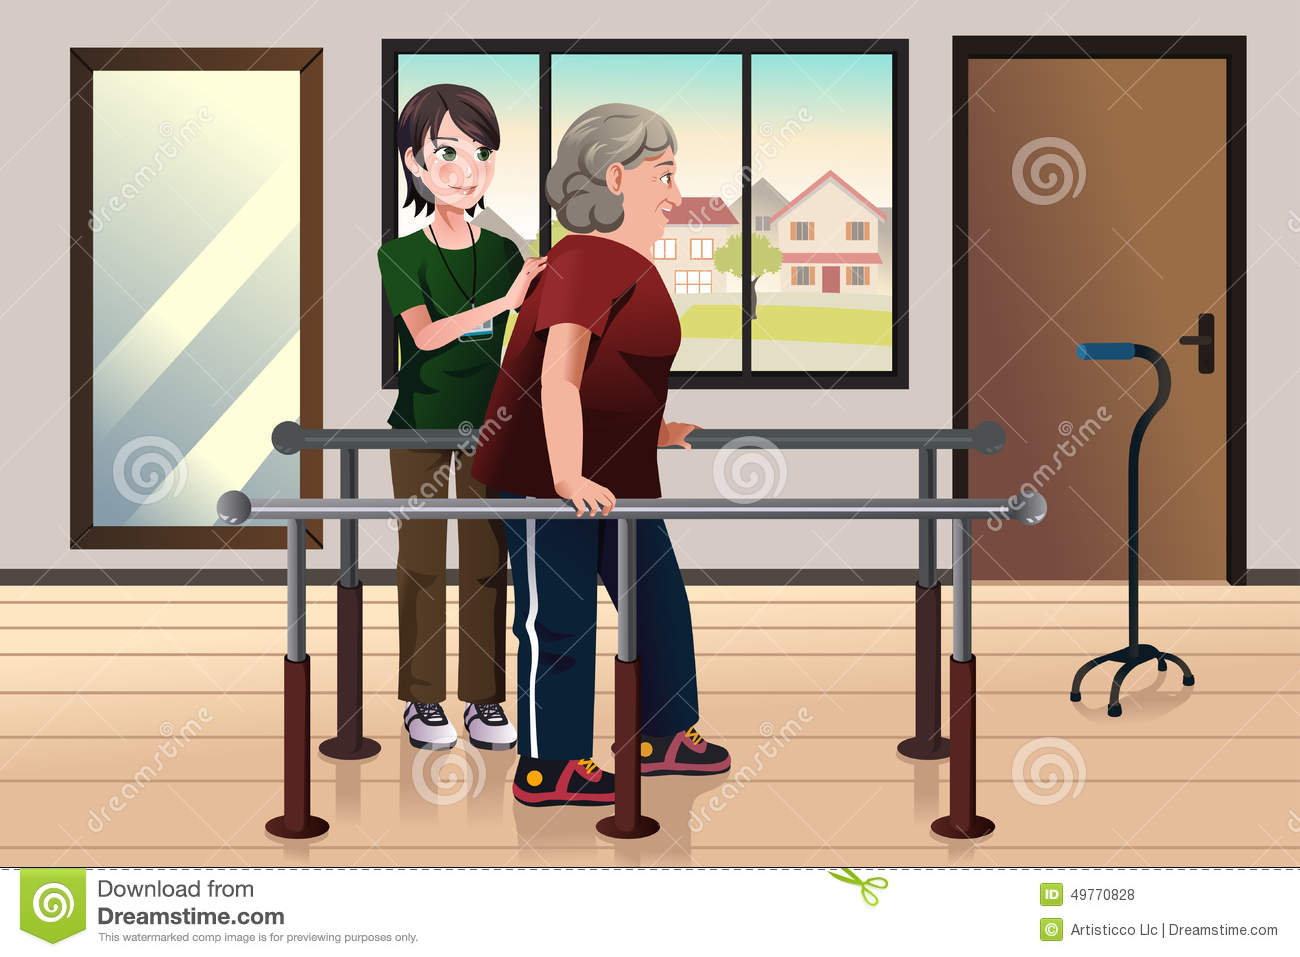 Cartoon physical therapy - Physical Therapist Working On A Patient Royalty Free Stock Photos